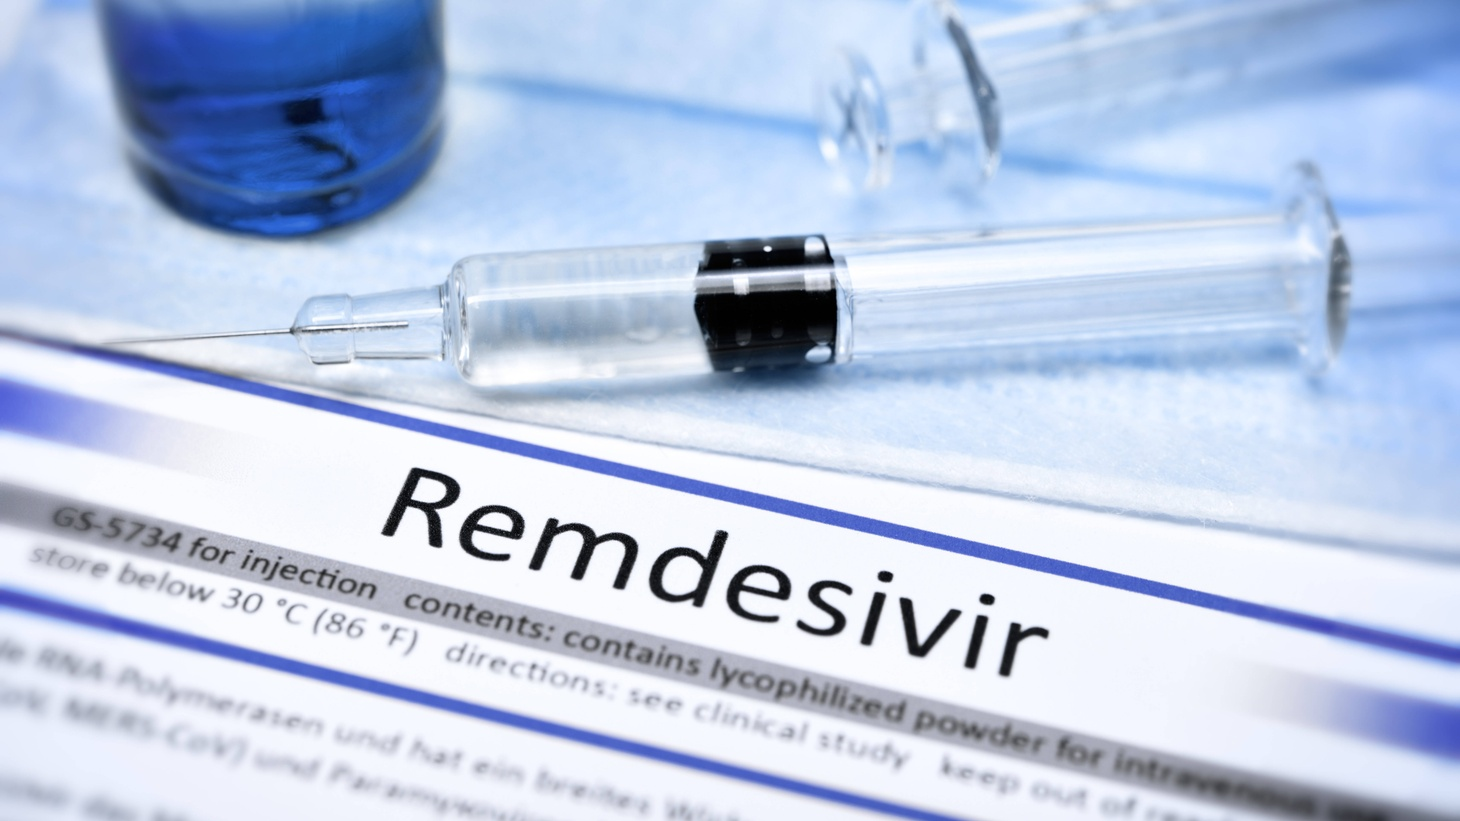 A Syringe and Remdesivir label. Last week, the U.S. FDA approved Remdesivir as a treatment for COVID-19, but a new World Health Organization study showed that it had no effect on COVID-19 deaths or recovery time.